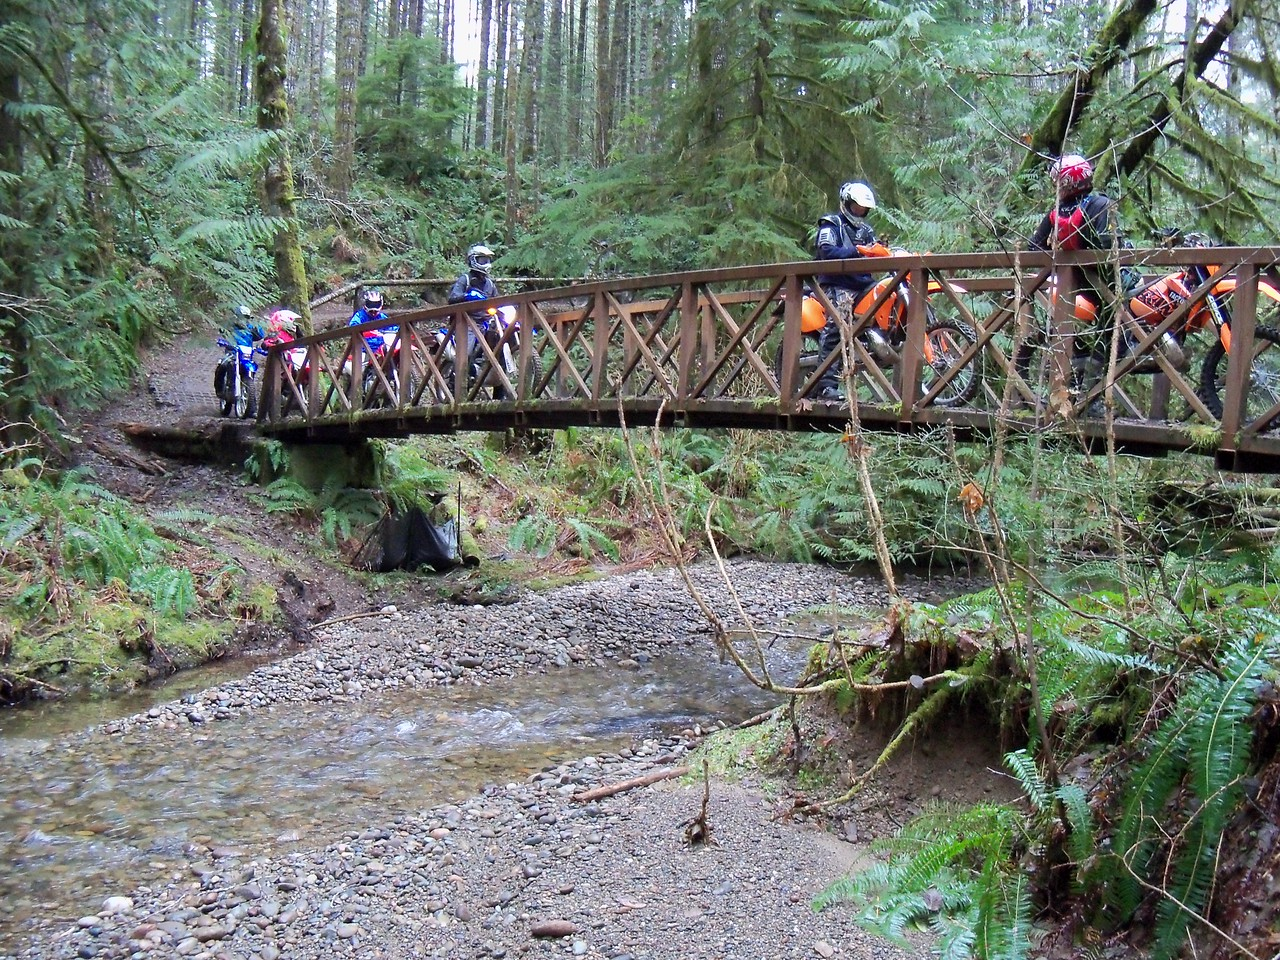 First Bridge on the lower Overland Trail